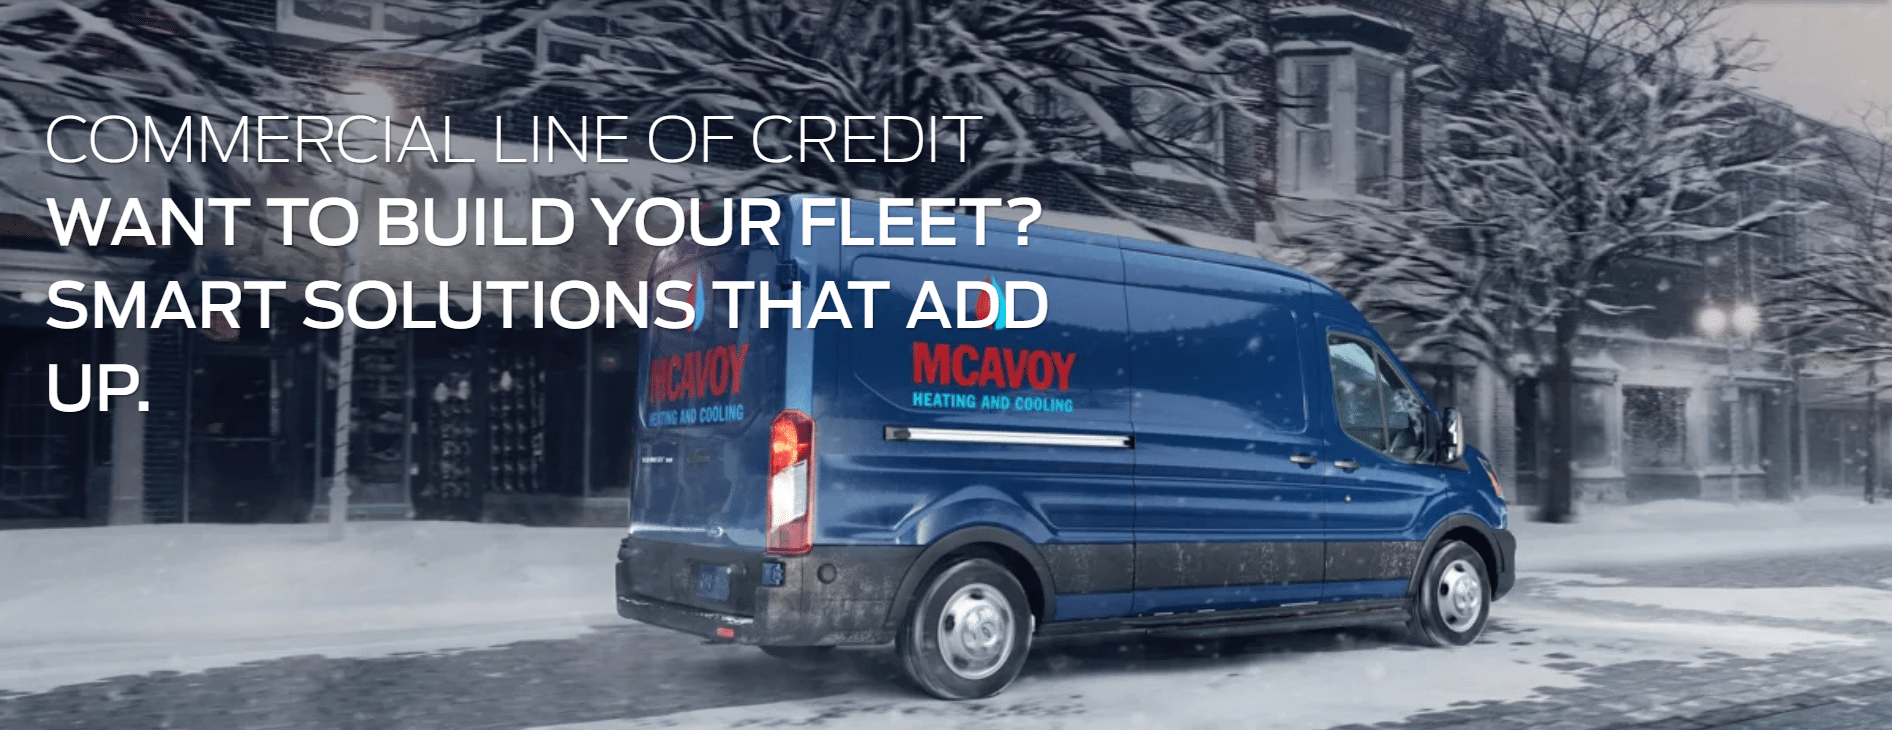 Ford of Canada Commercial Line of Credit